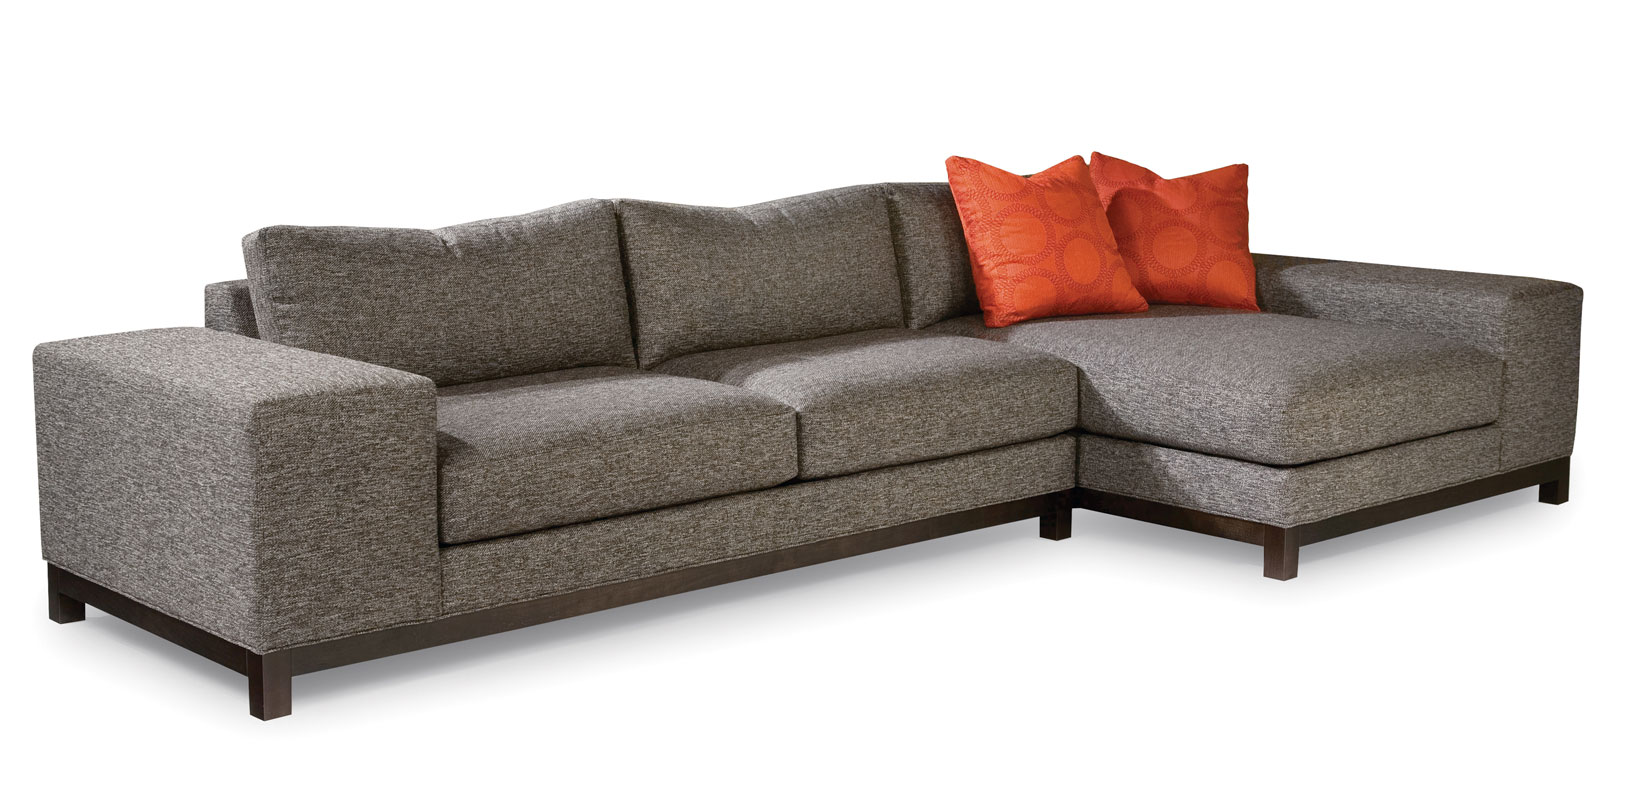 Thayer Coggin 1209 Maxwood Series Sectional